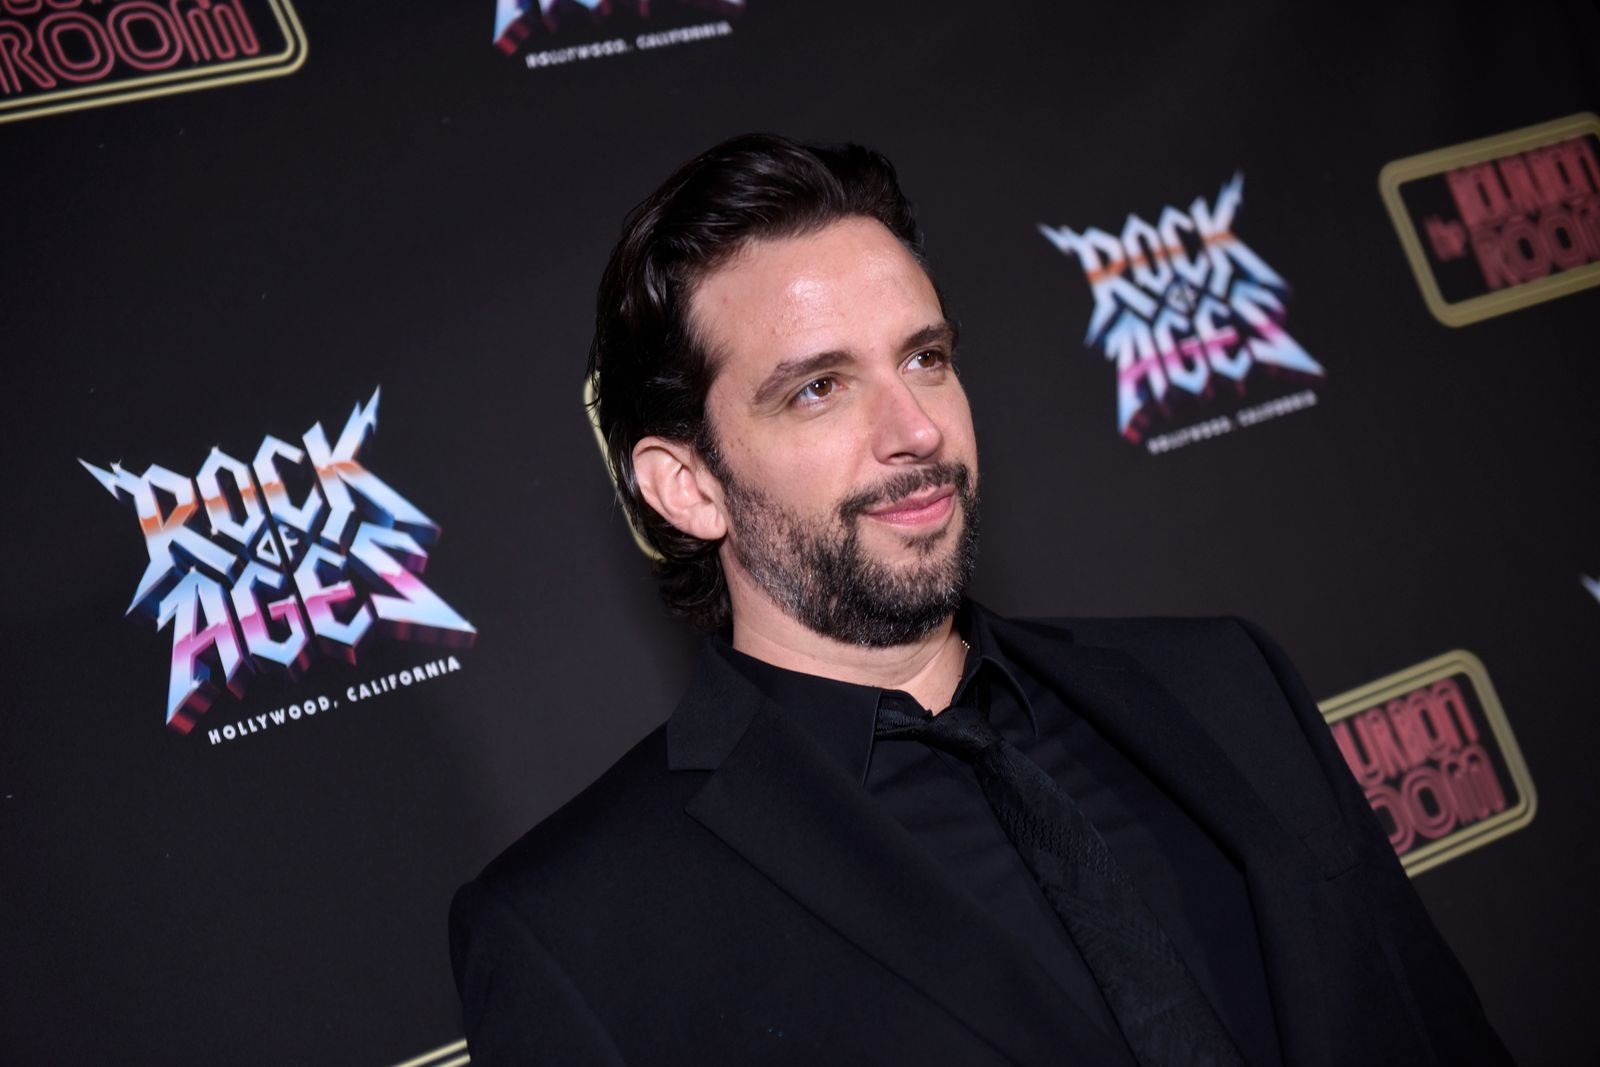 """Nick Cordero at the opening night of """"Rock Of Ages"""" at The Bourbon Room on January 15, 2020, in Hollywood, California   Photo: Vivien Killilea/Getty Images"""